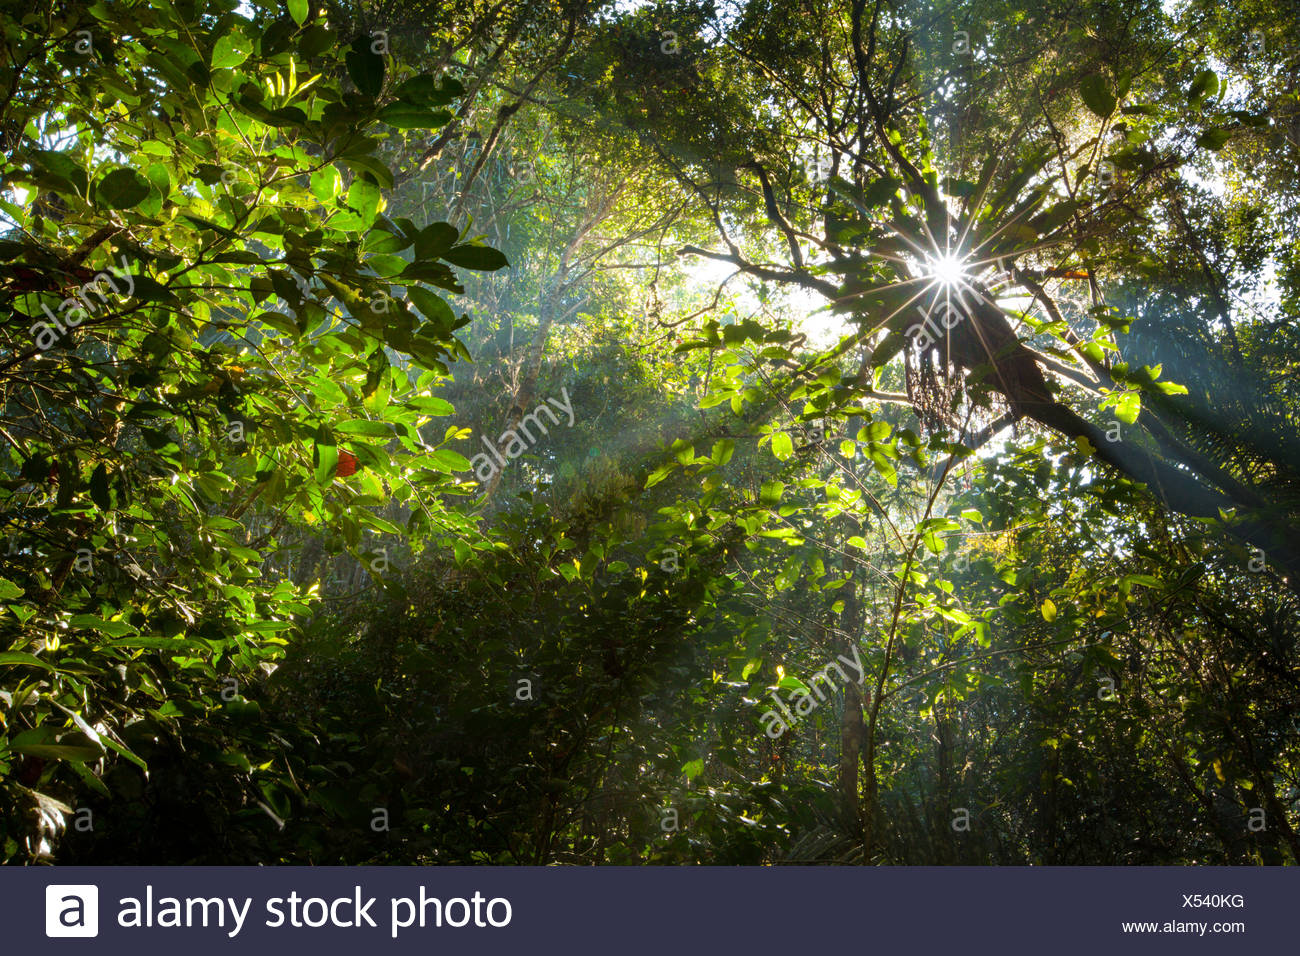 Early morning sun creating sunbeams through the humid rainforest canopy, Andasibe-Mantadia National Park, Madagascar. Stock Photo